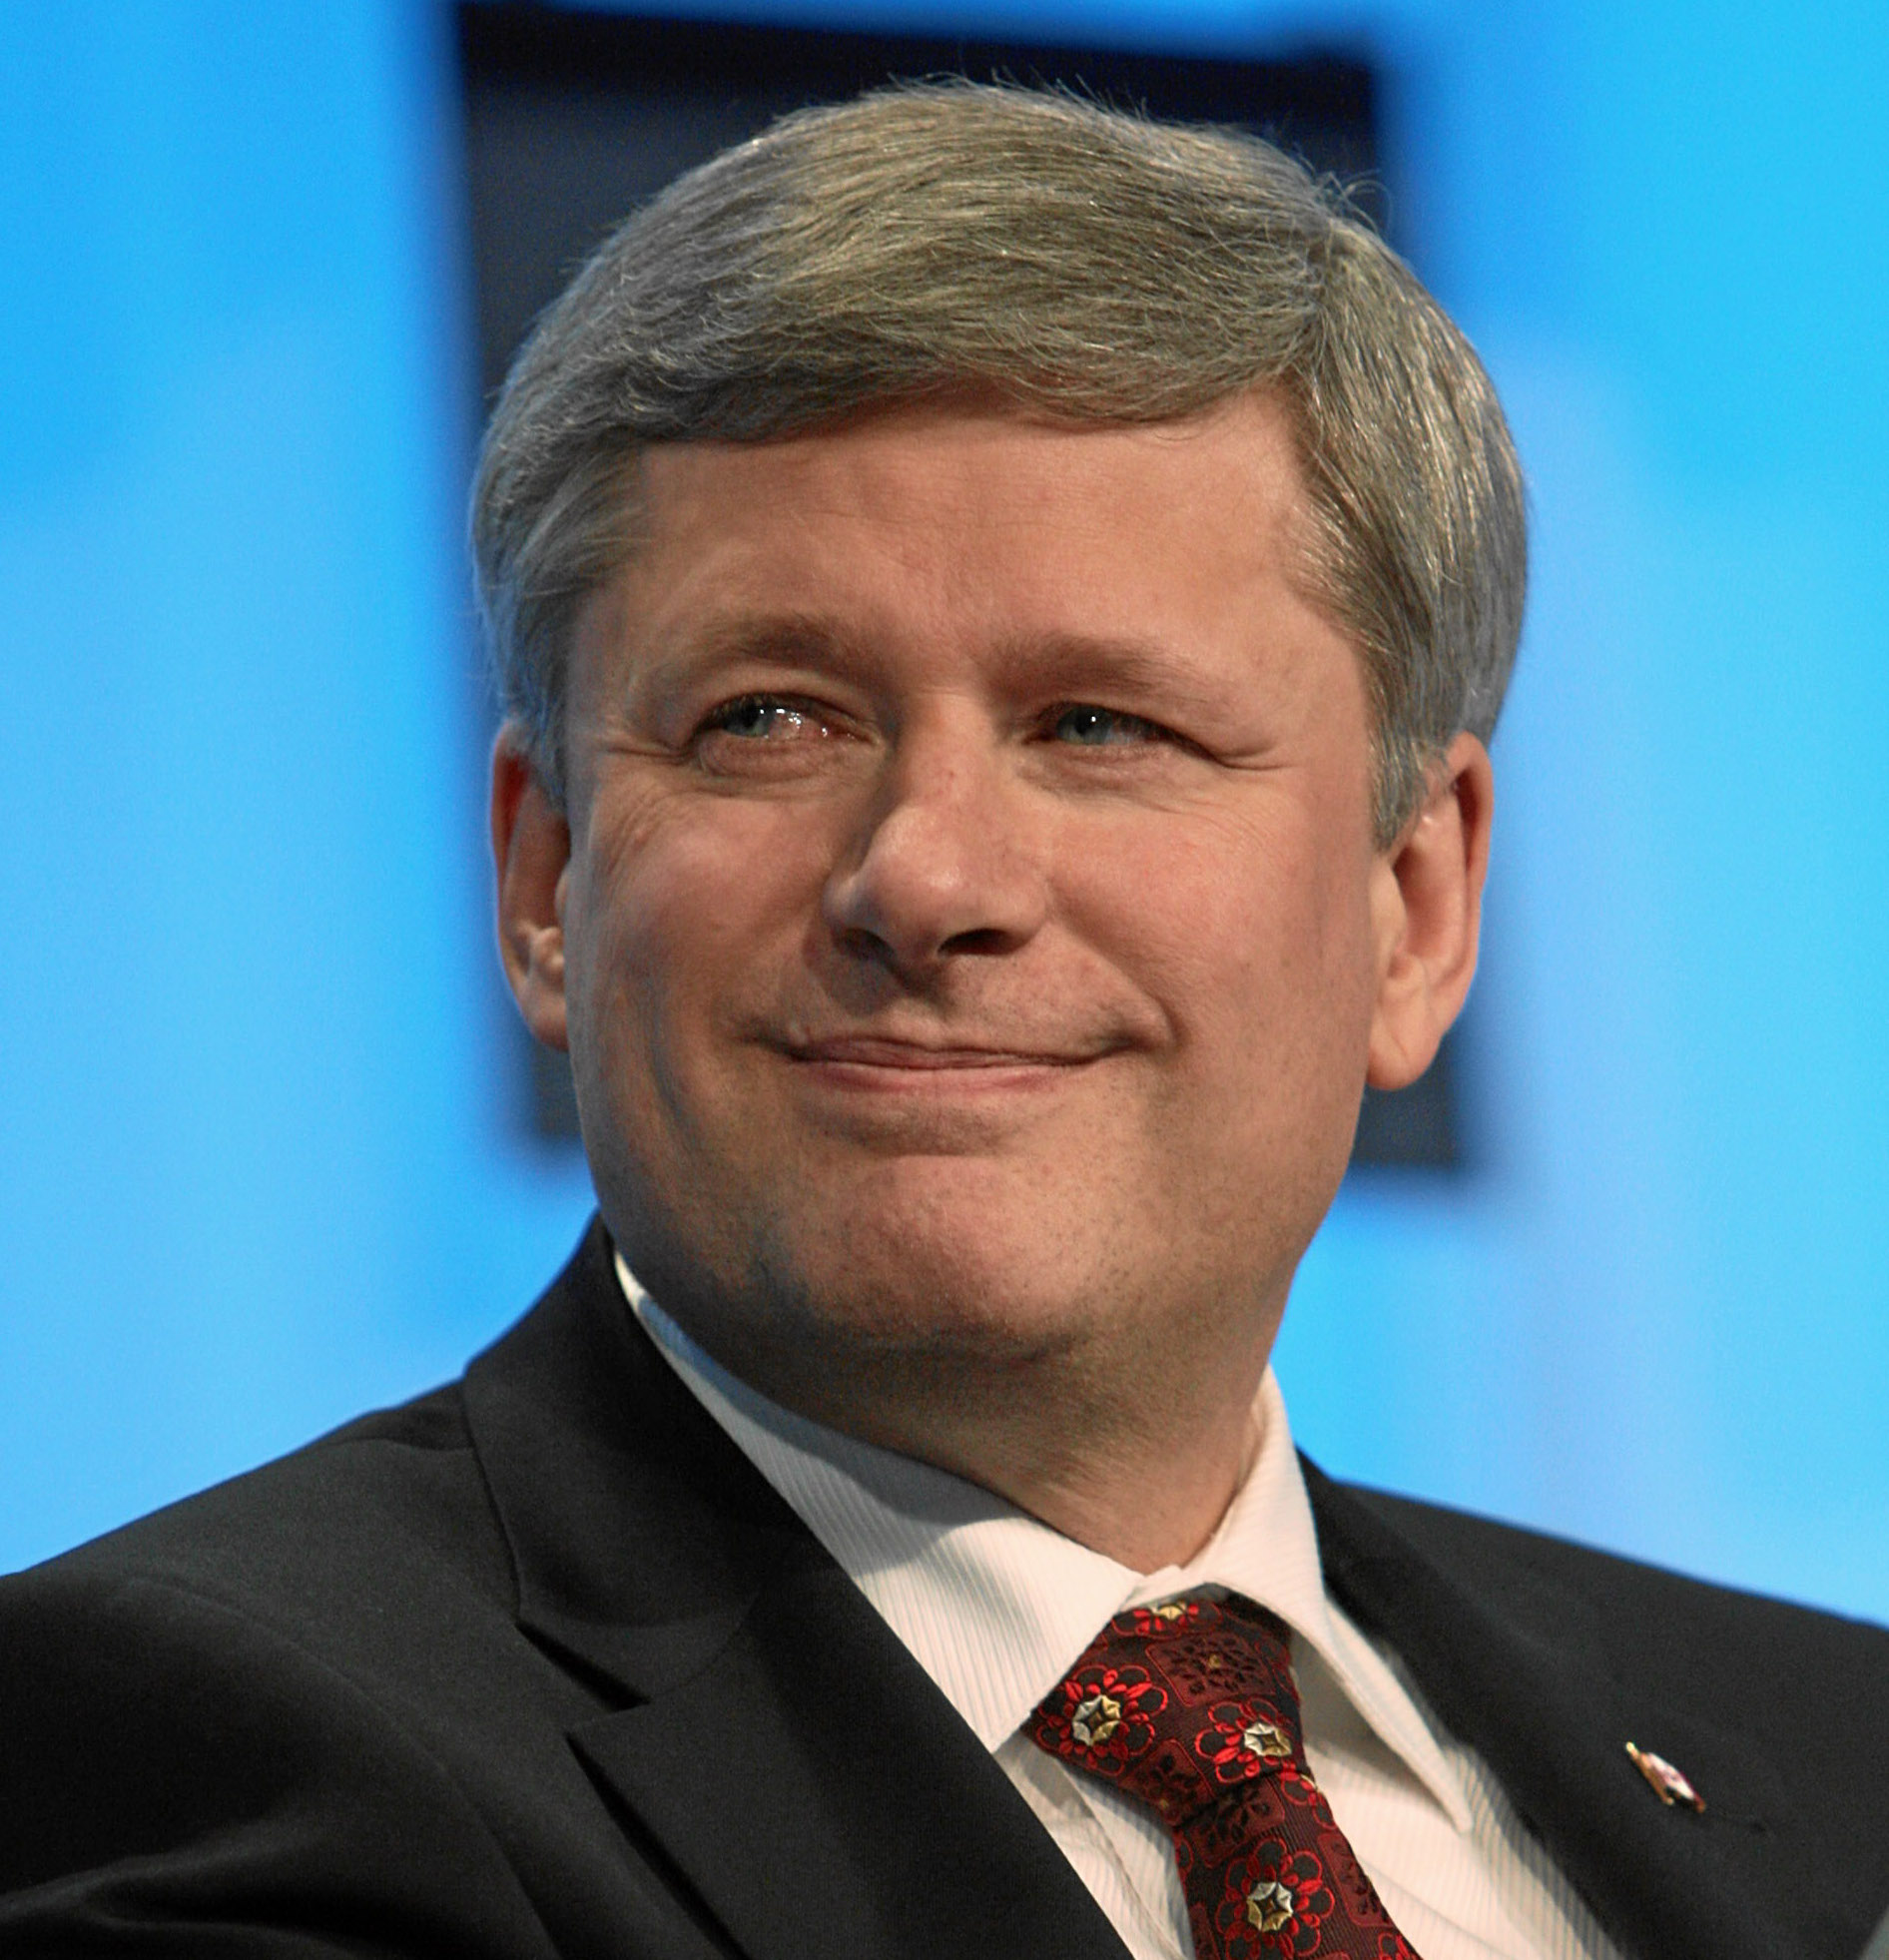 Stephen Harper Net Worth